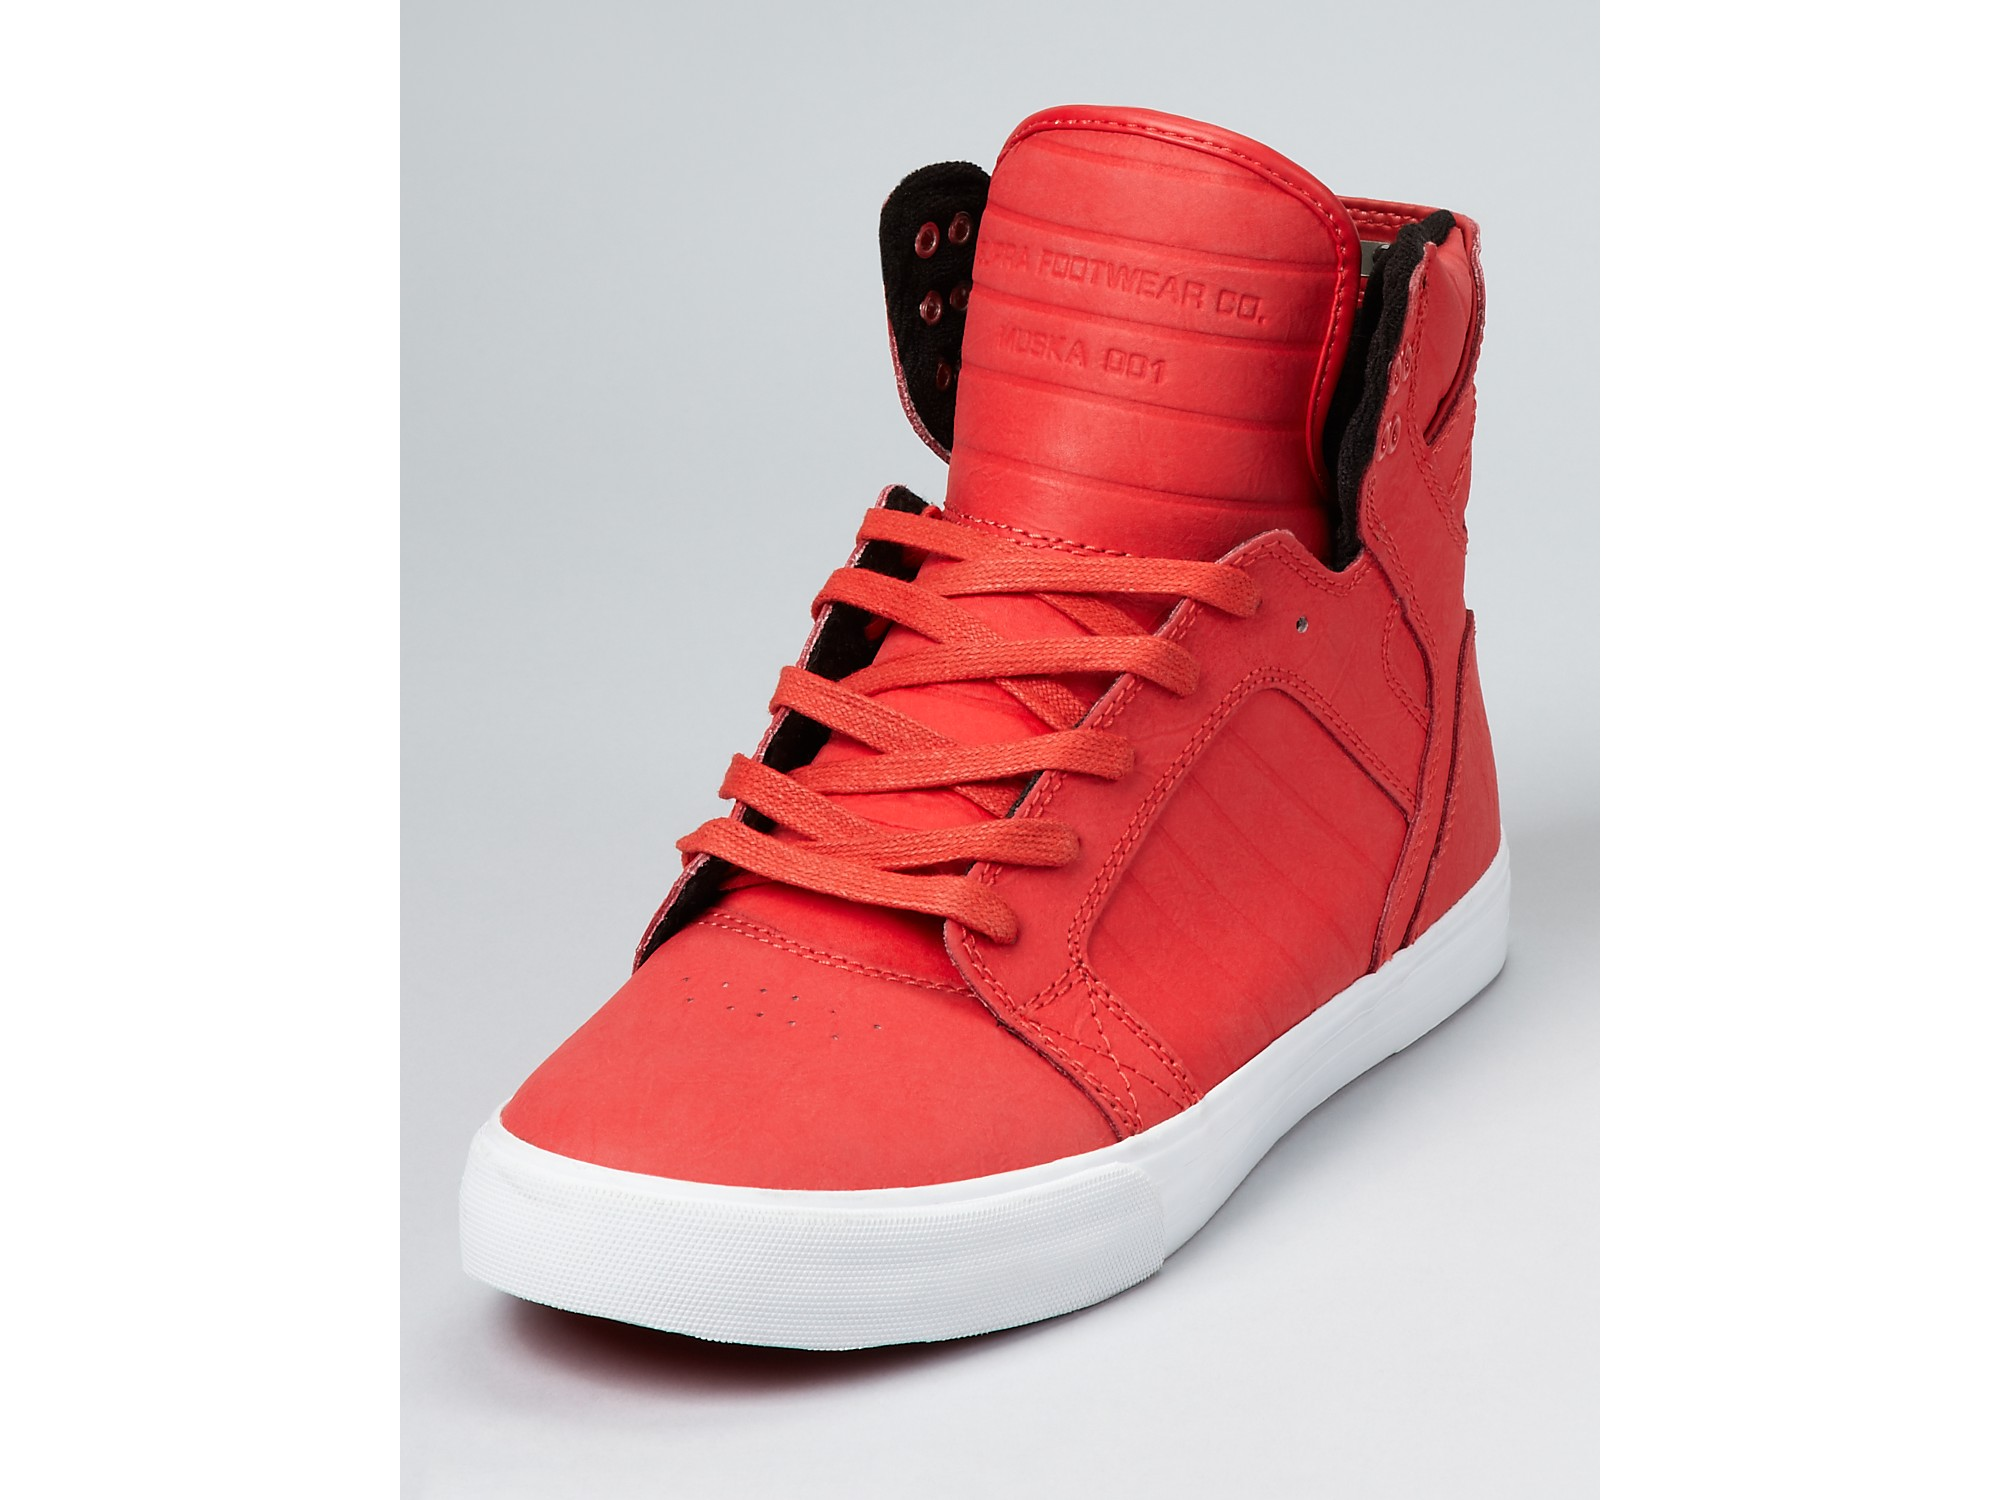 Lyst - Supra Skytop High Top Casual Sneakers in Red for Men 7c2f4d734